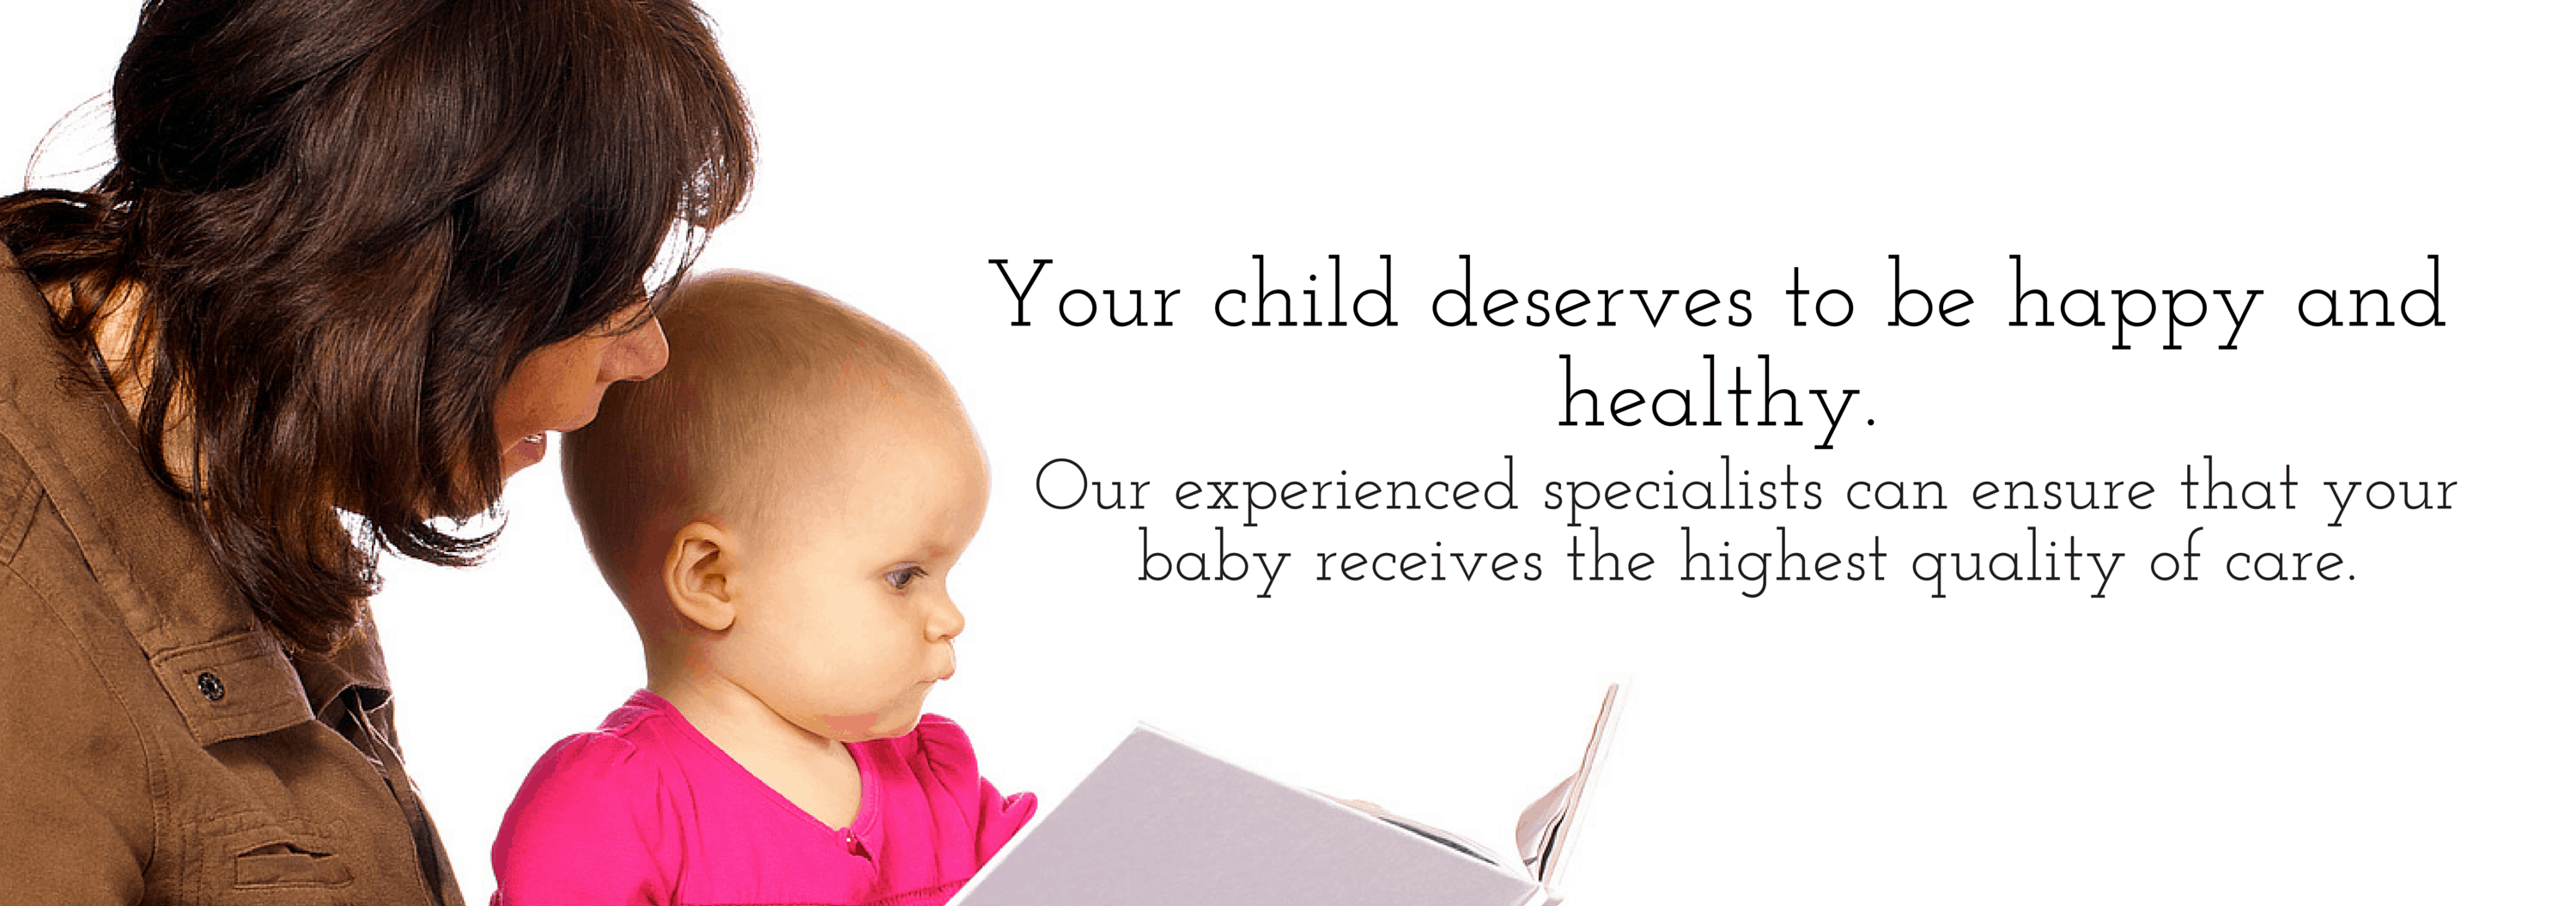 Your-child-deserves-to-be-happy-and-healthy.-2